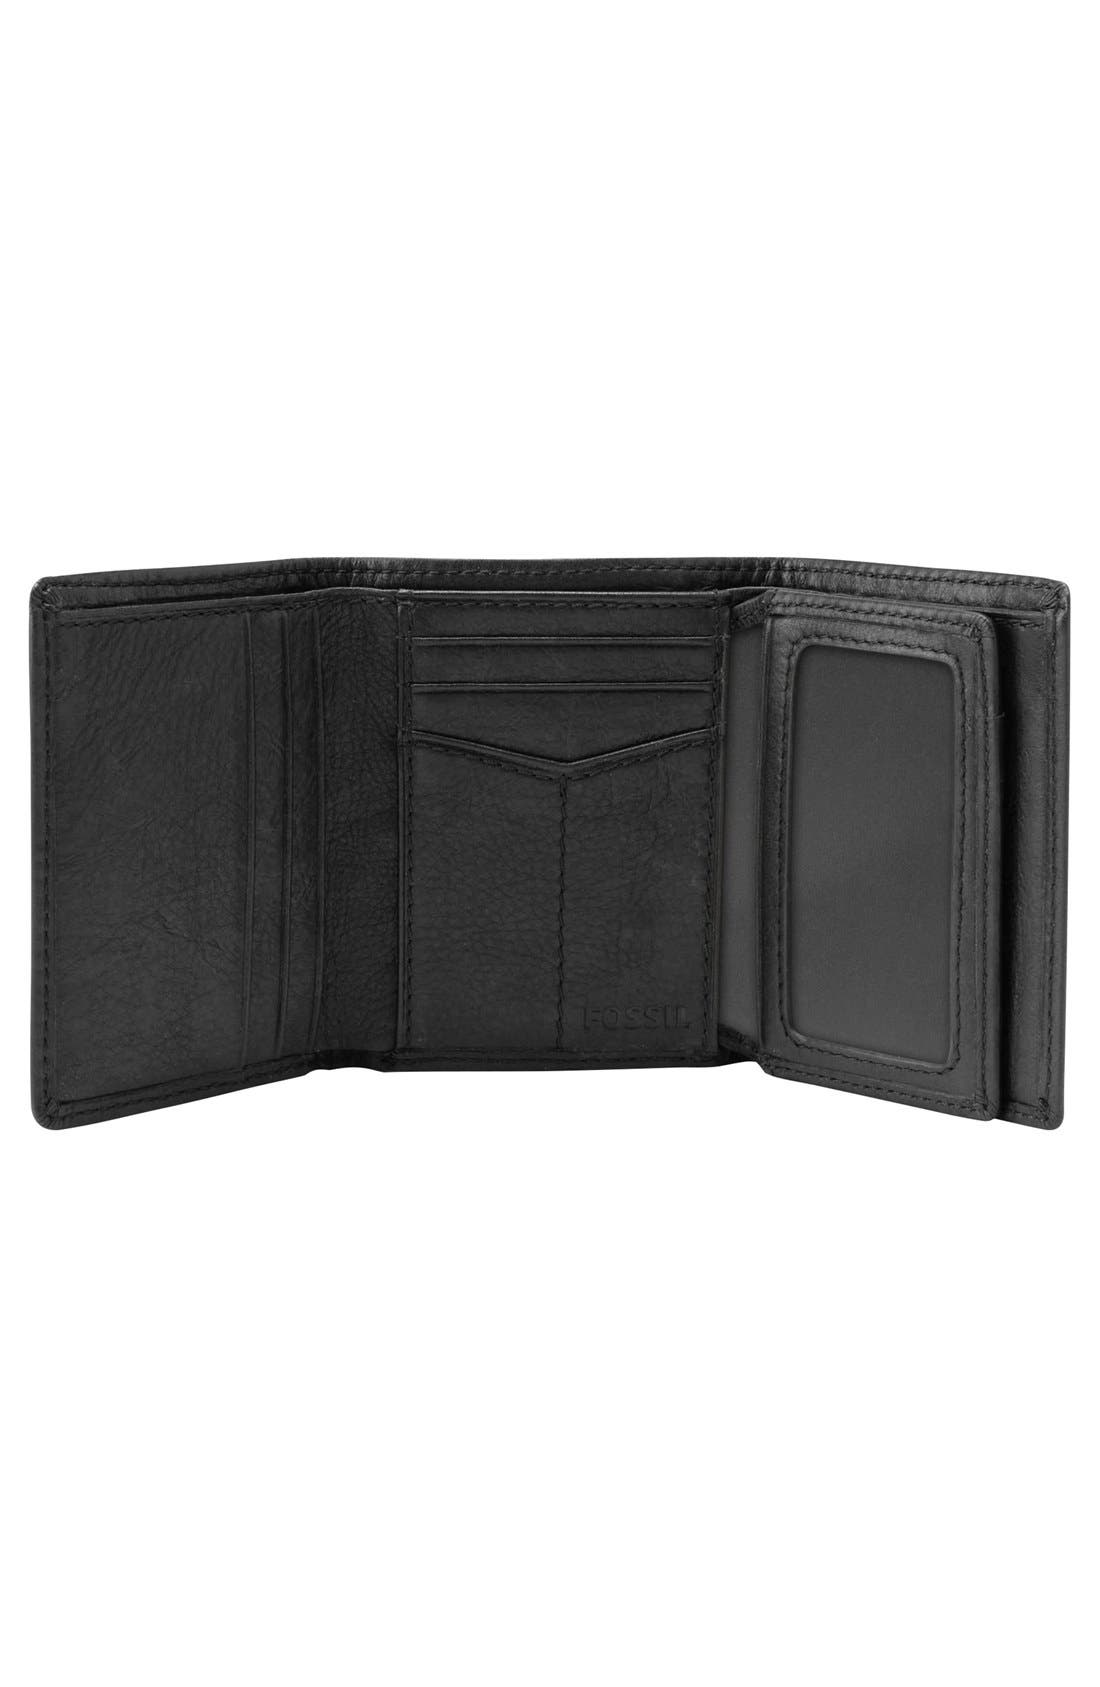 FOSSIL,                             'Ingram' Leather Trifold Wallet,                             Alternate thumbnail 3, color,                             001